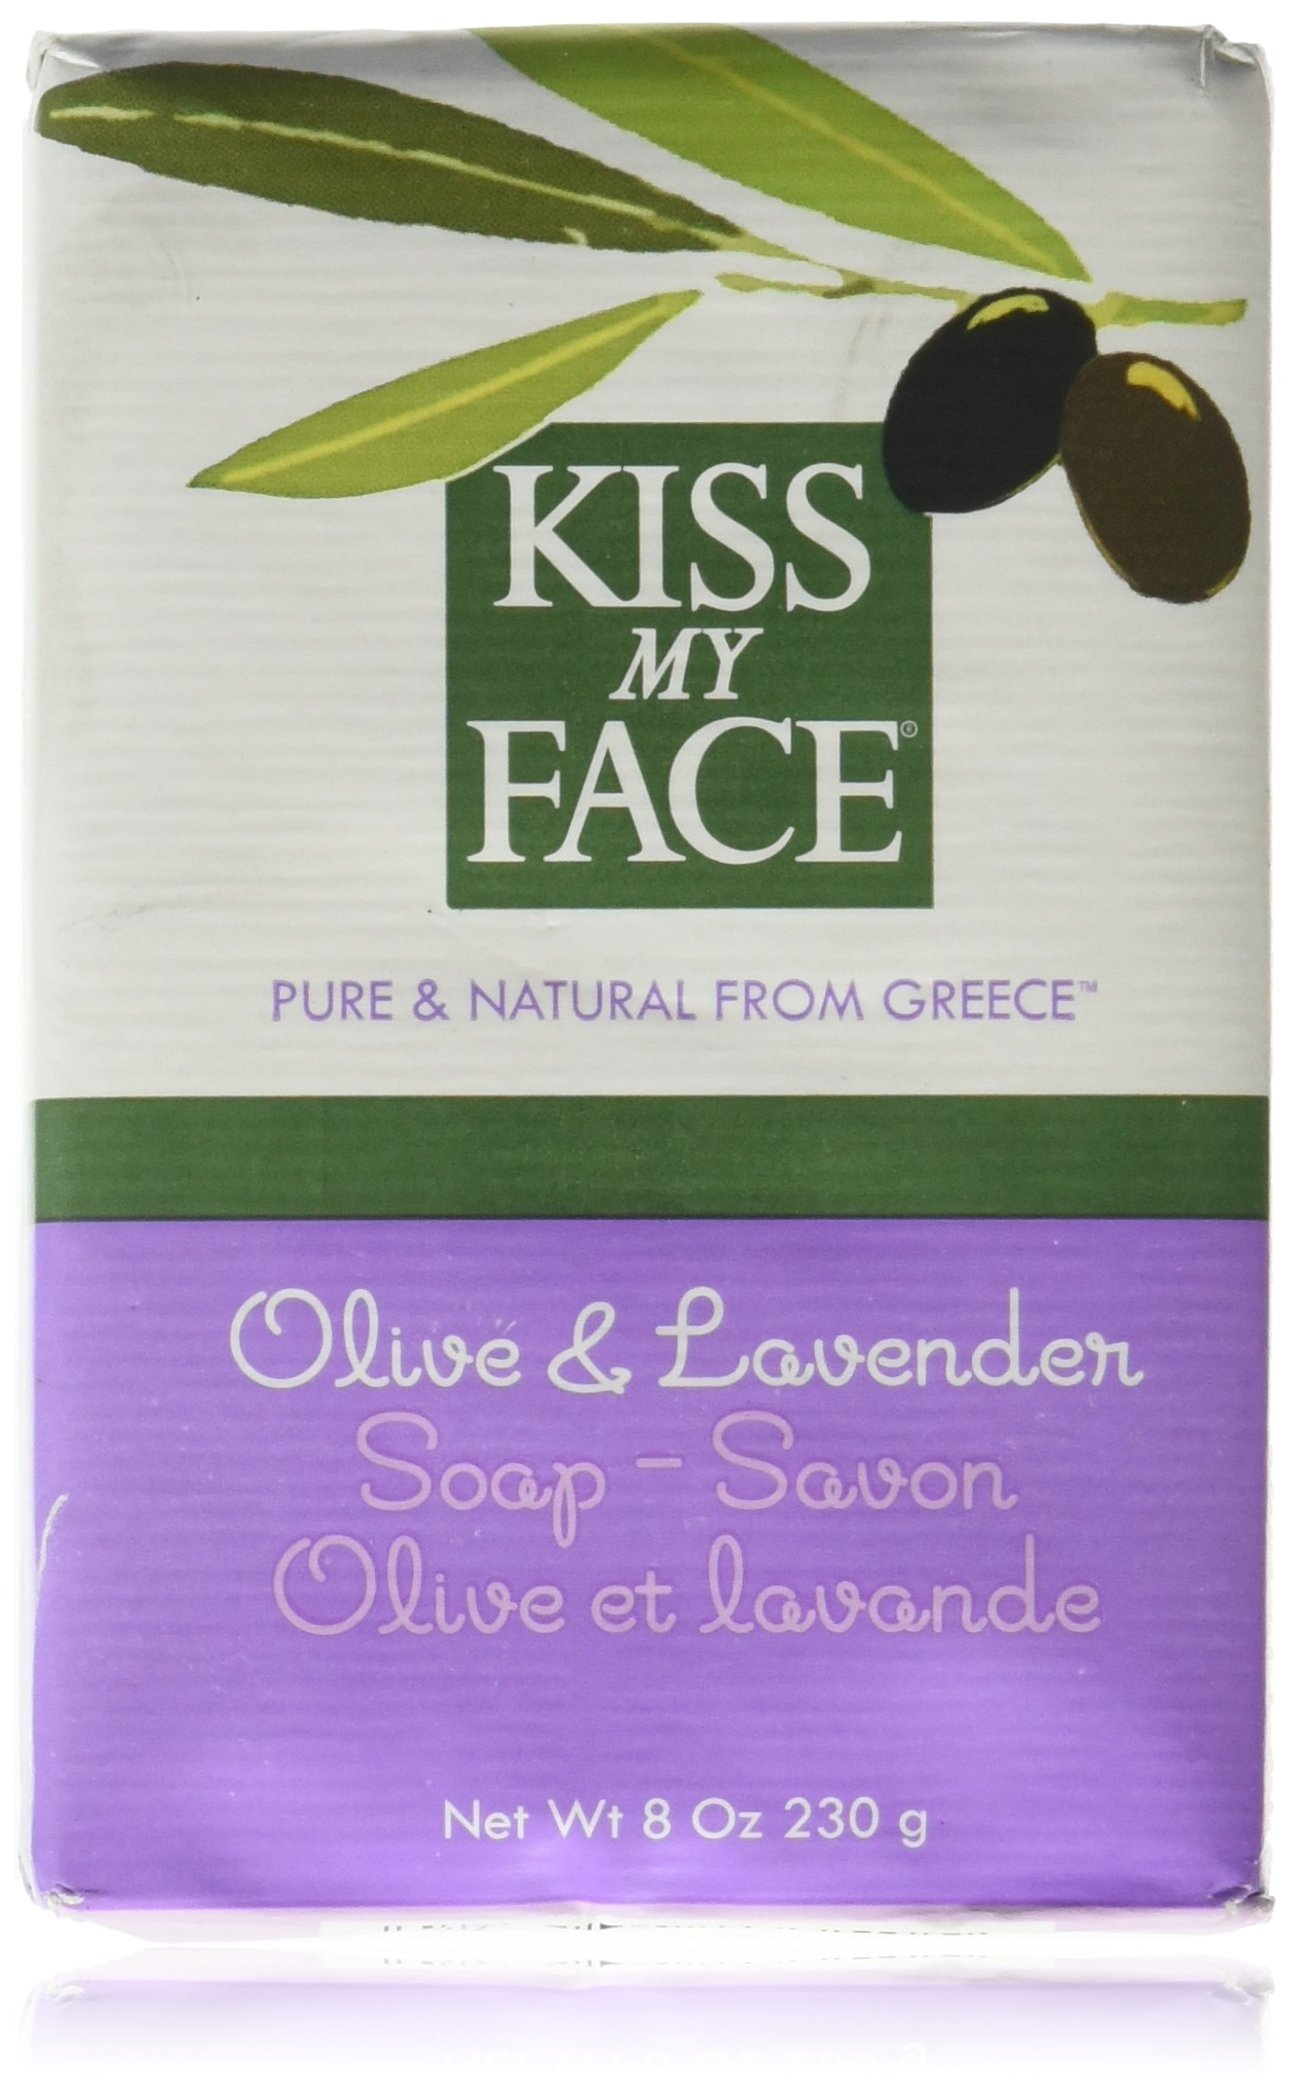 Kiss My Face Moisturizing Bar Soap for All Skin Types - Olive & Lavender - 8 oz